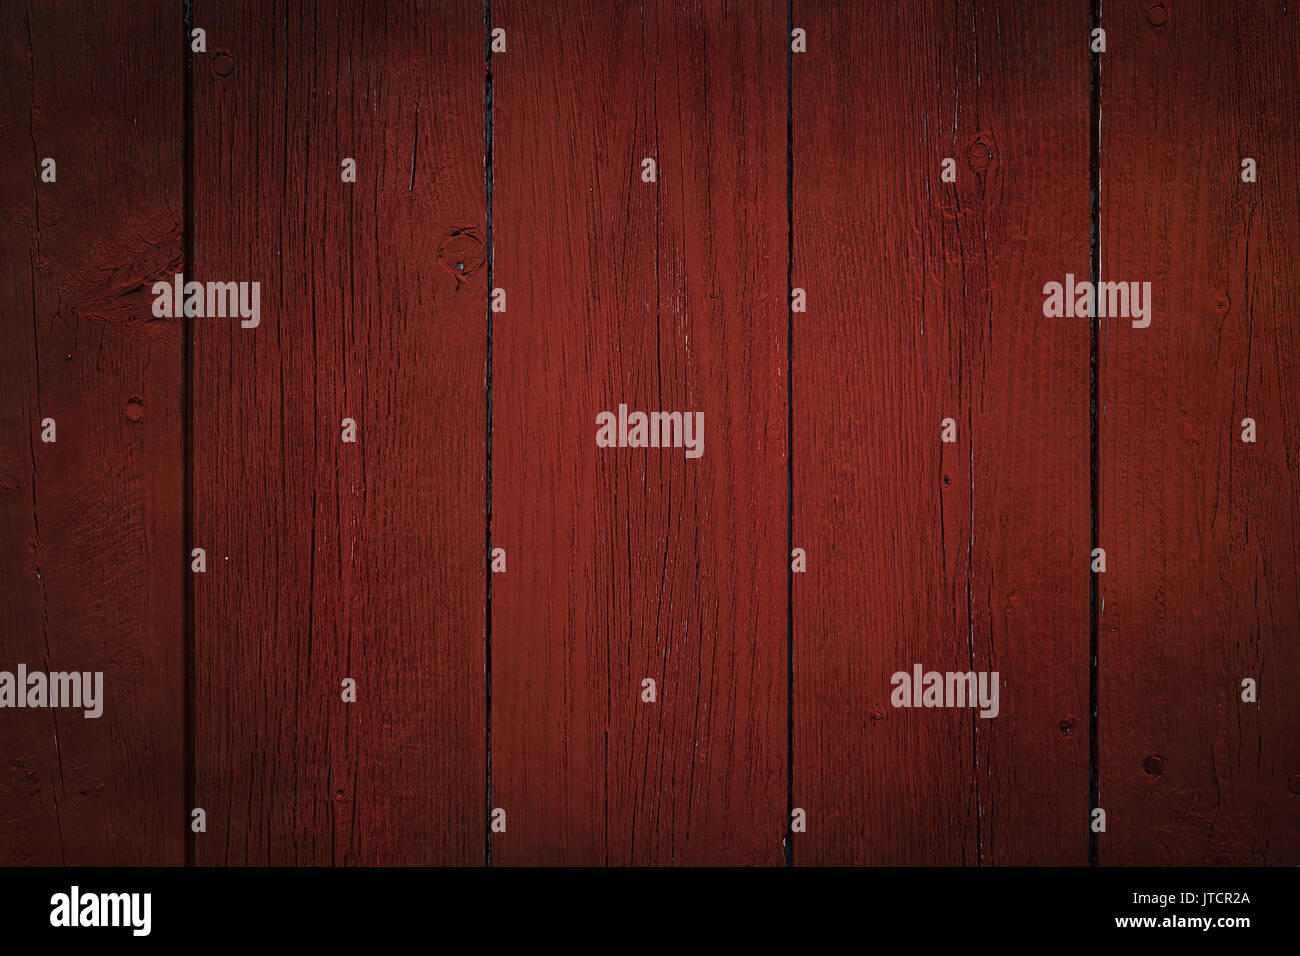 Dark red painted or stained board background. - Stock Image